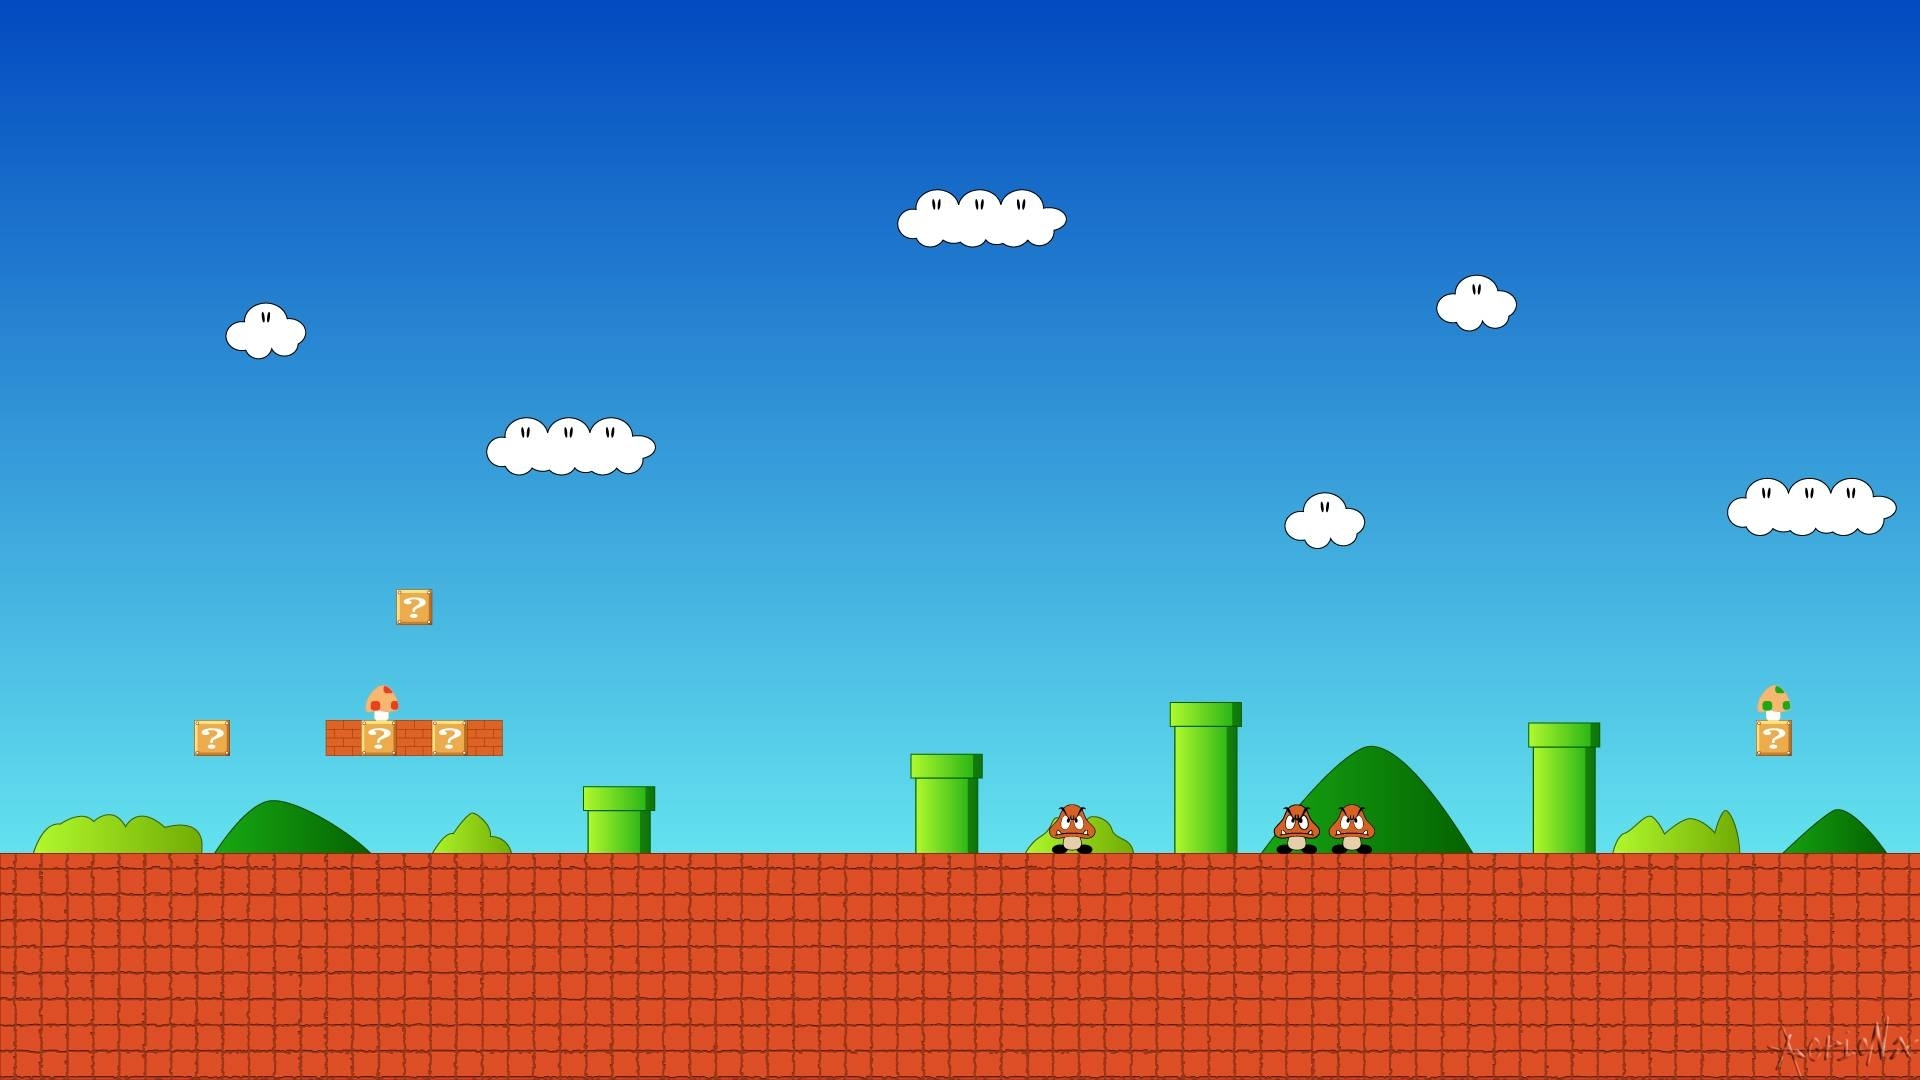 8 bit mario wallpapers - wallpaper cave